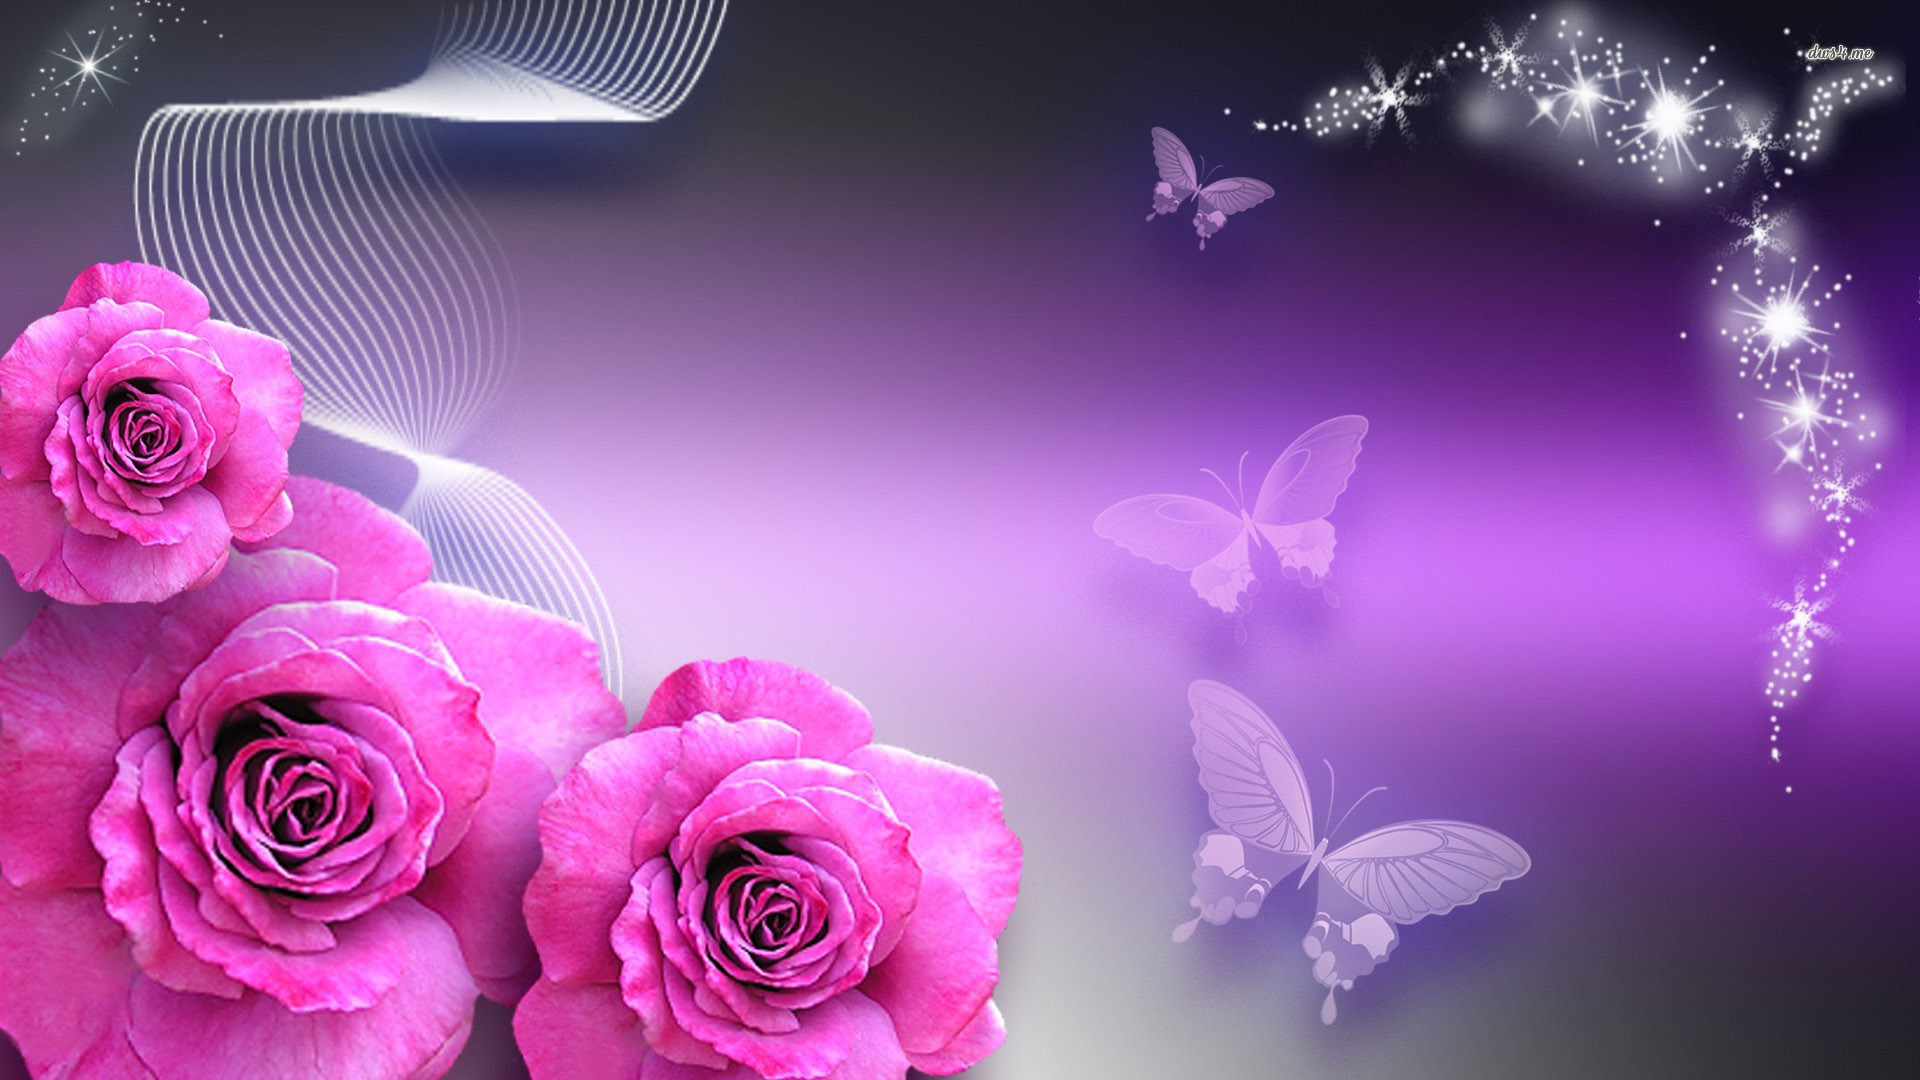 Butterflies Rosebuds Butterflies And Pink Roses Digital - Purple Roses Wallpaper Desktop Background , HD Wallpaper & Backgrounds